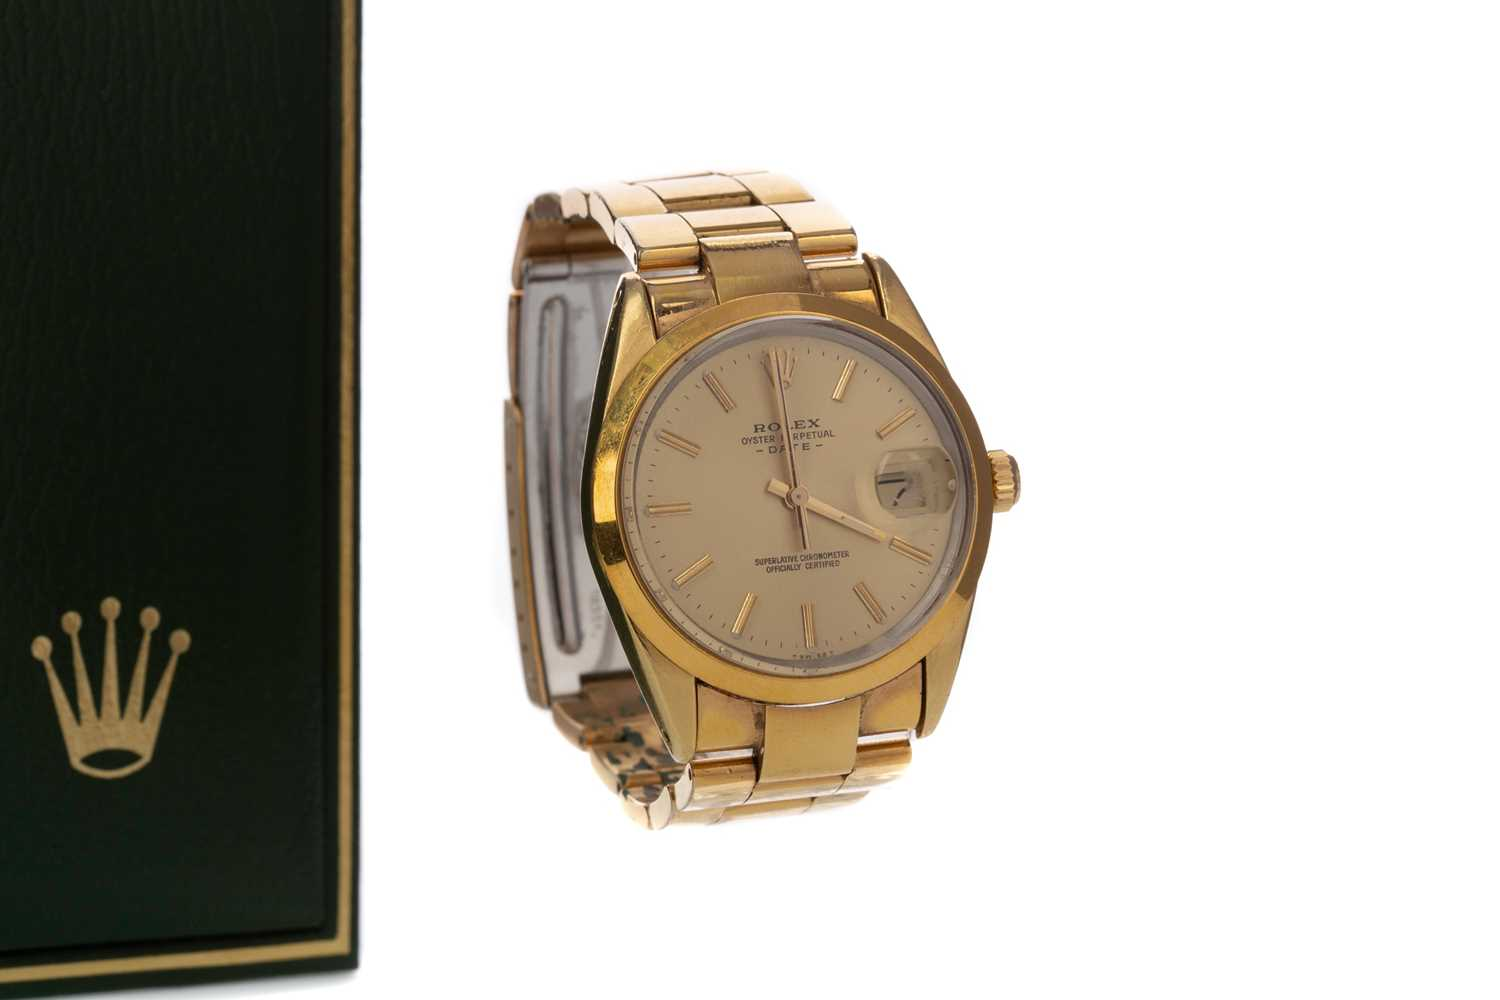 A GENTLEMAN'S ROLEX GOLD PLATED OYSTER PERPETUAL DATE AUTOMATIC WRISTWATCH